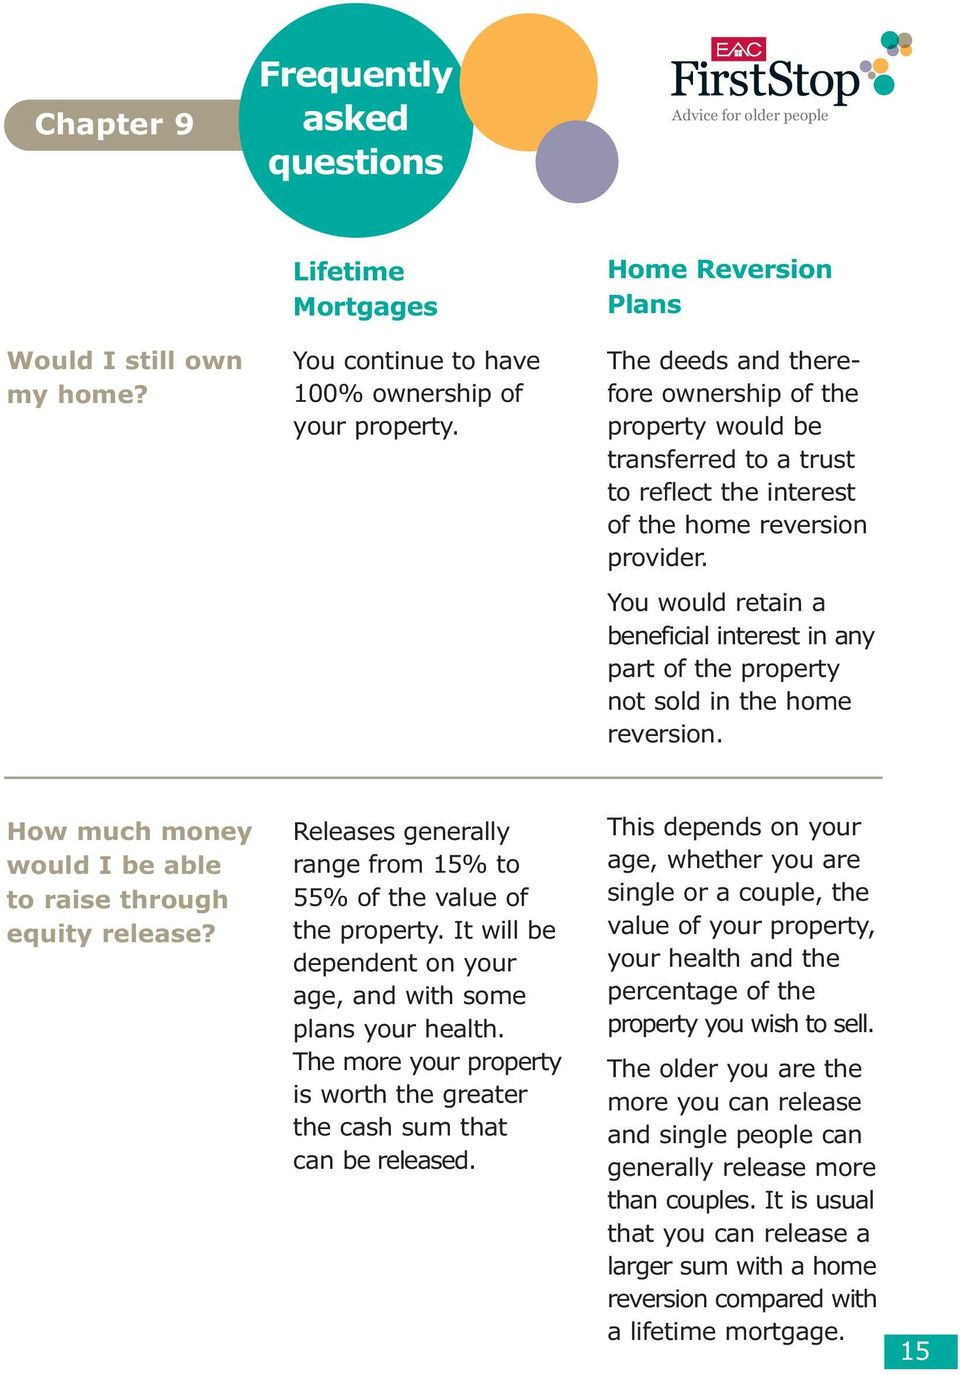 You would retain a beneficial interest in any part of the property not sold in the home reversion. How much money would I be able to raise through equity release?